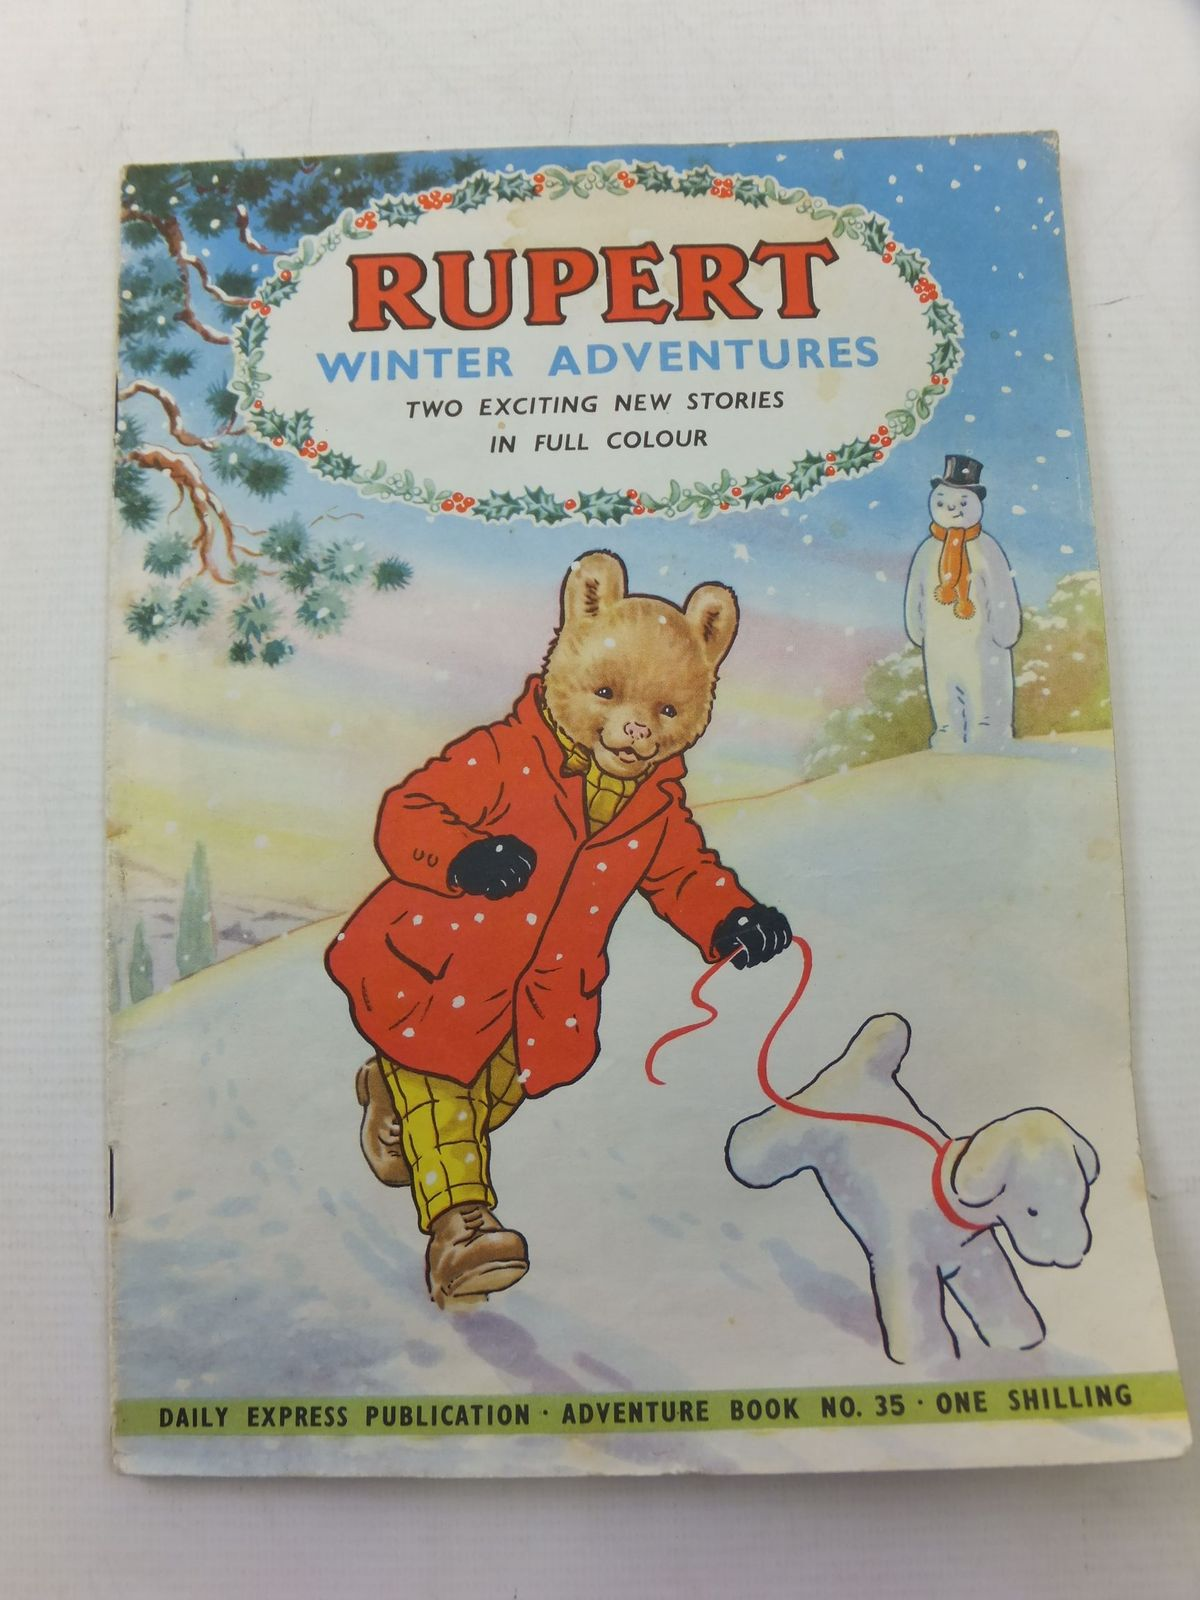 Photo of RUPERT ADVENTURE BOOK No. 35 - WINTER ADVENTURES written by Bestall, Alfred published by Daily Express, Oldbourne Book Co. Ltd. (STOCK CODE: 2114249)  for sale by Stella & Rose's Books